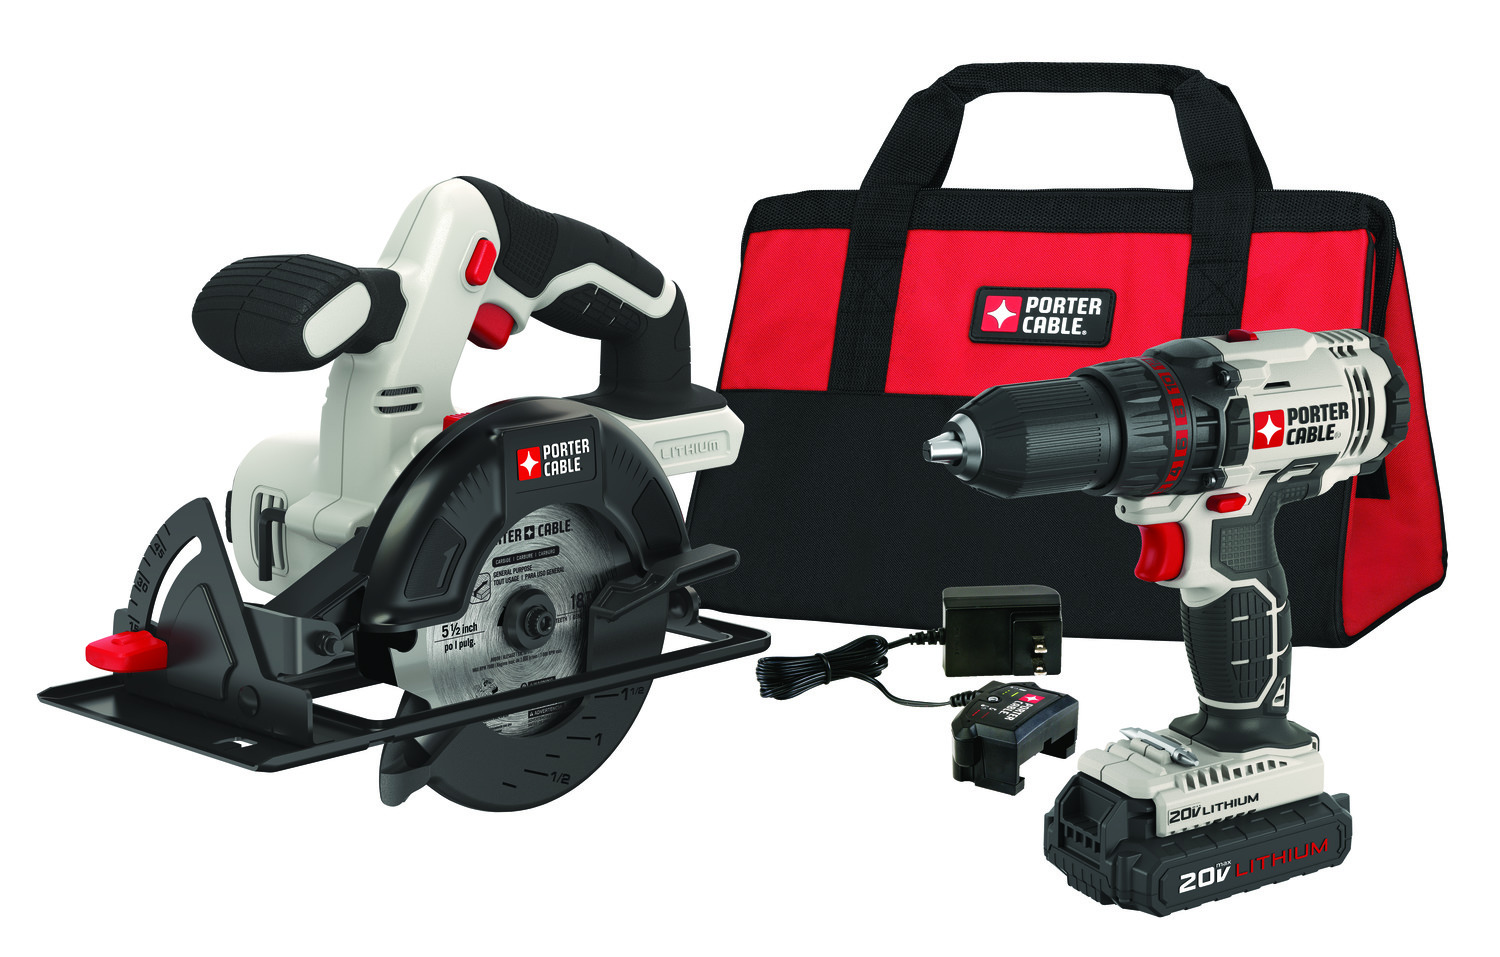 PORTER CABLE 20-Volt Max Lithium-Ion 1/2-Inch Cordless Drill & 5 1/2-Inch Circular Saw, PCCK612L2